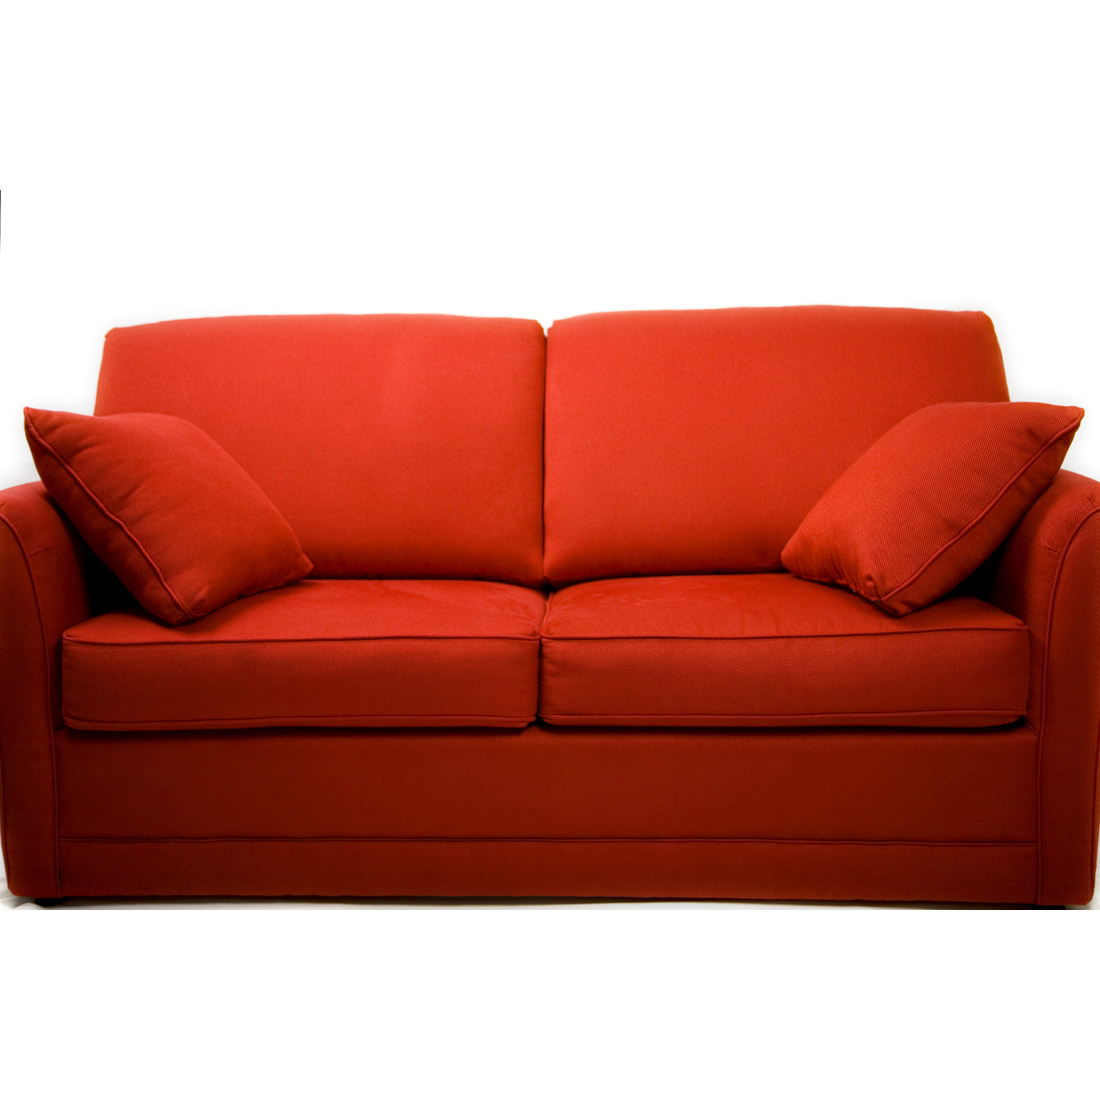 Image Result For Steam Clean Couch